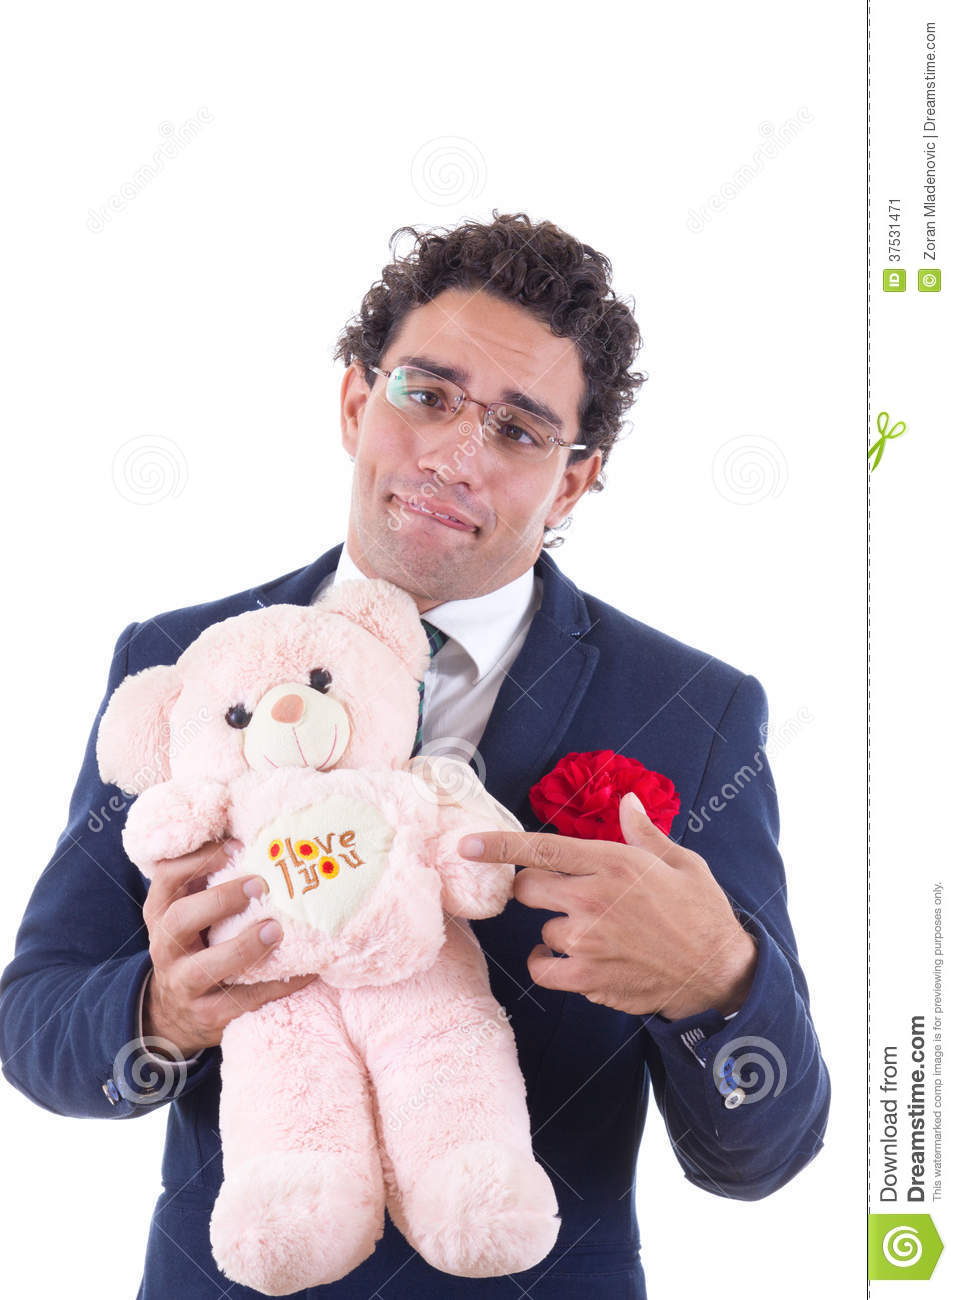 Clumsy Man Holding A Teddy Bear Stock Image Image Of